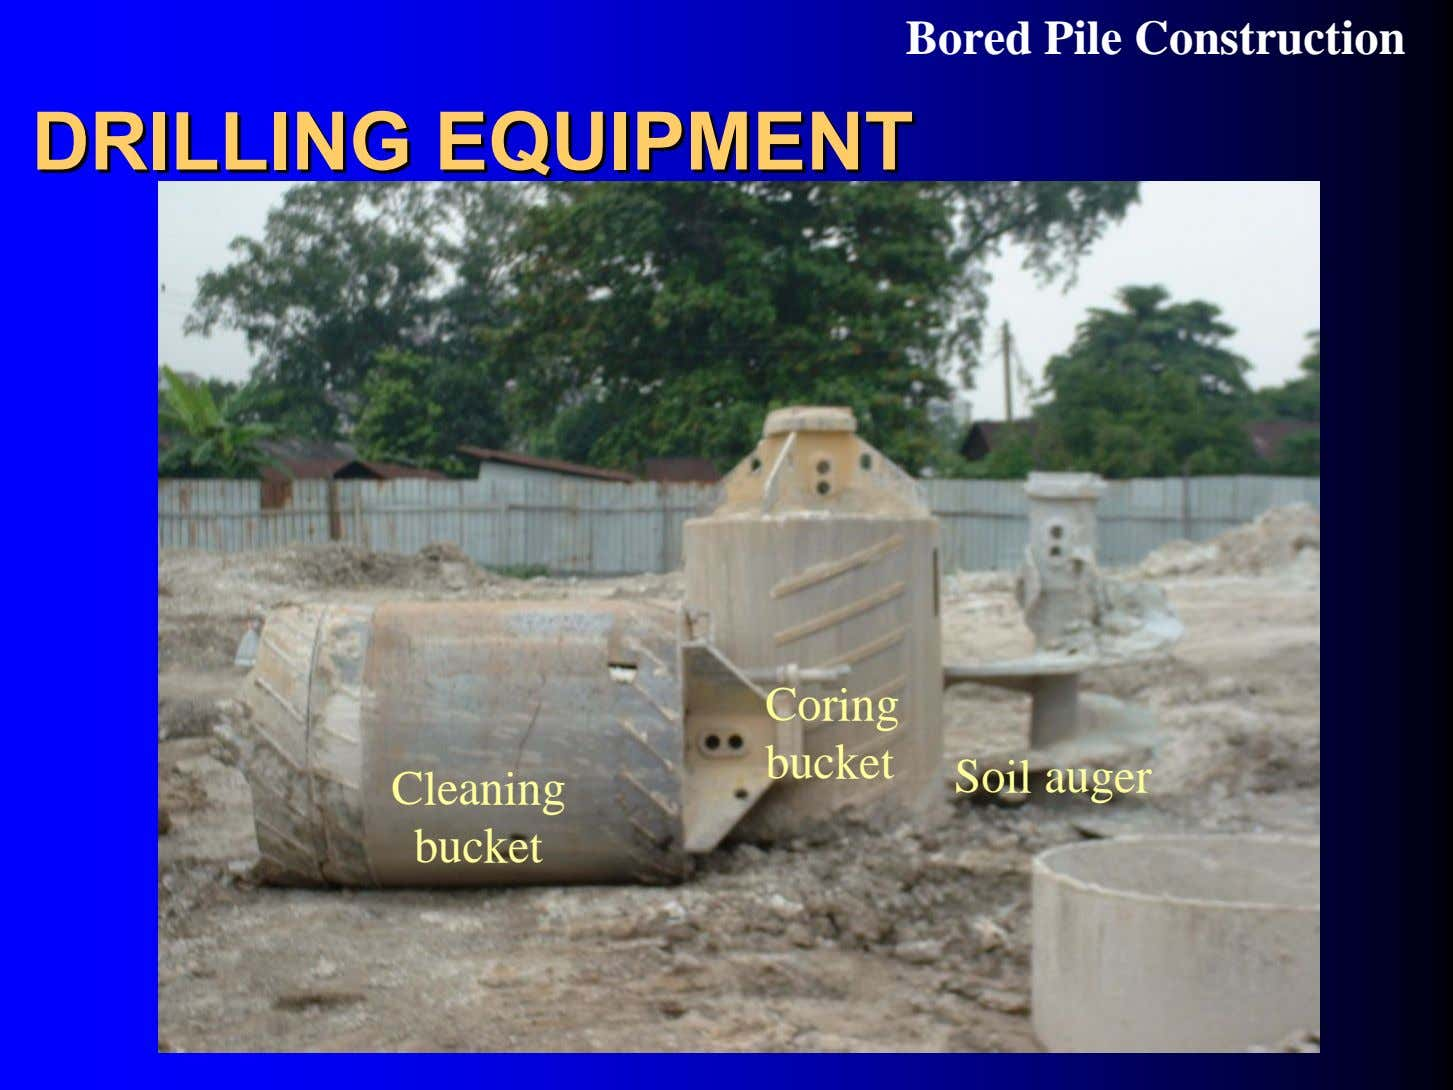 Bored Pile Construction DRILLINGDRILLING EQUIPMENTEQUIPMENT Coring bucket Soil auger Cleaning bucket